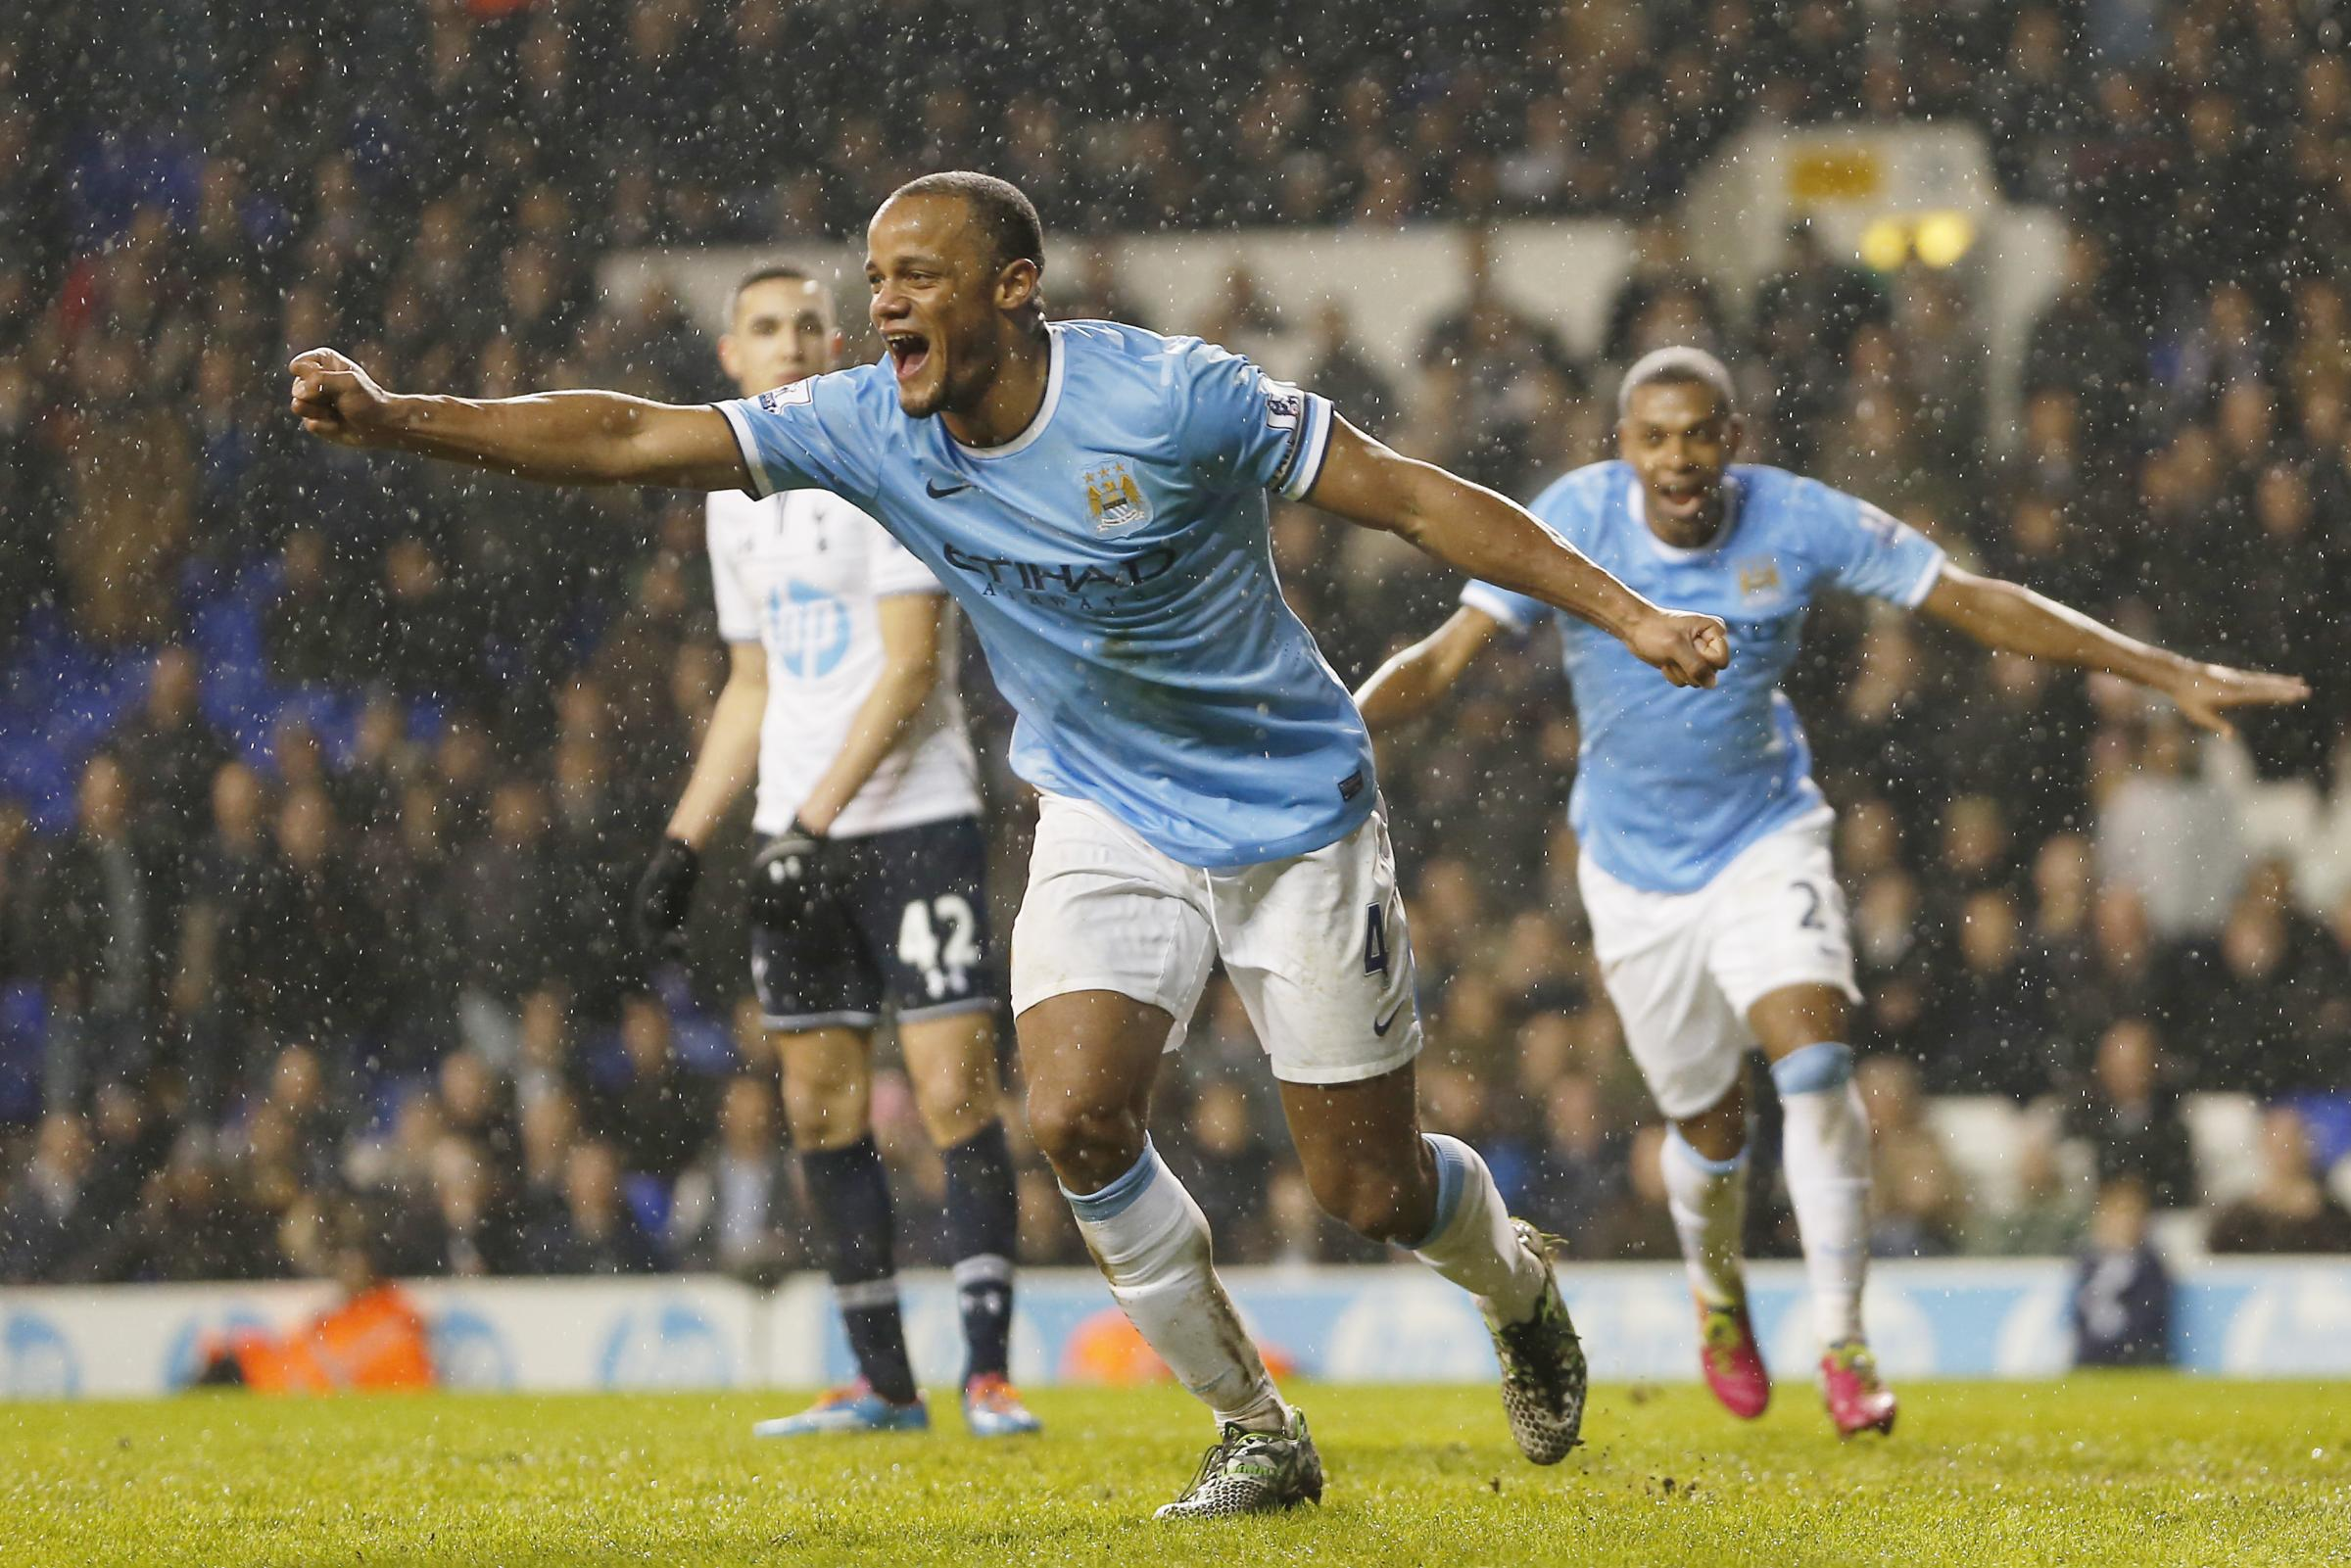 Vincent Kompany added a fifth late on to complete a miserable evening for Spurs